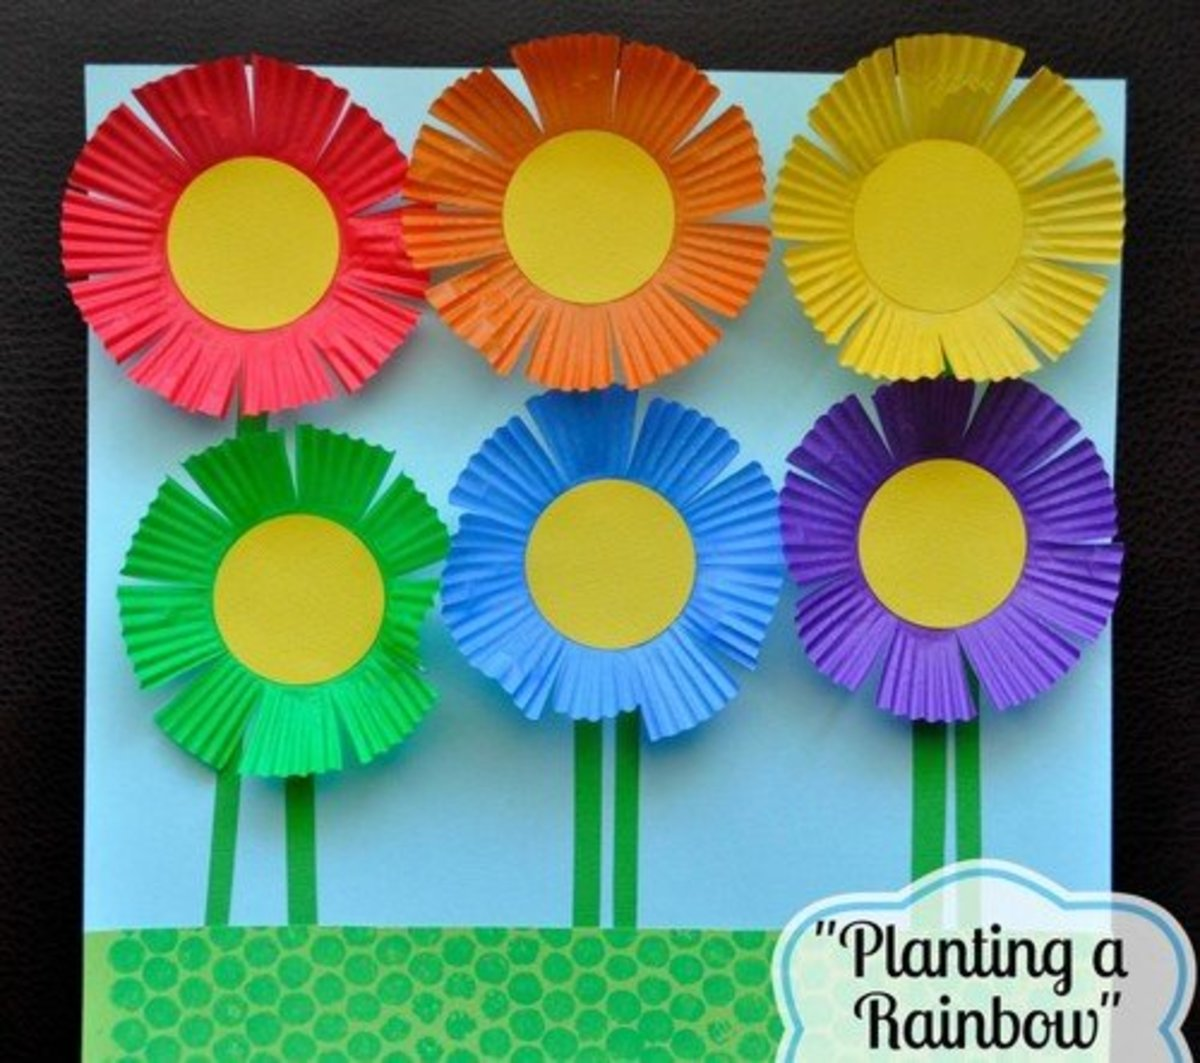 43 Fun And Easy Craft Ideas For Little Kids Feltmagnet